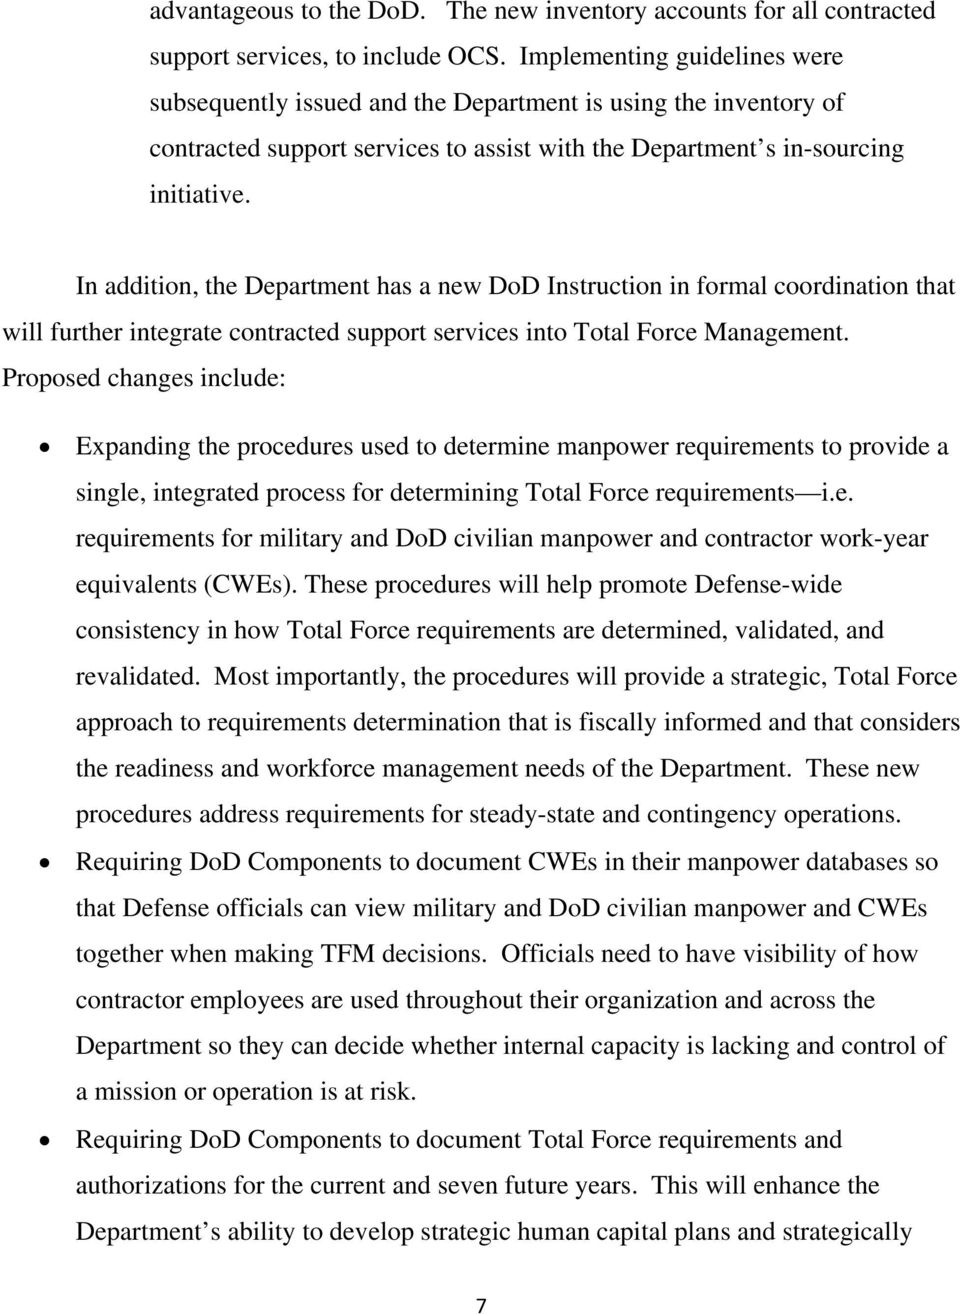 In addition, the Department has a new DoD Instruction in formal coordination that will further integrate contracted support services into Total Force Management.